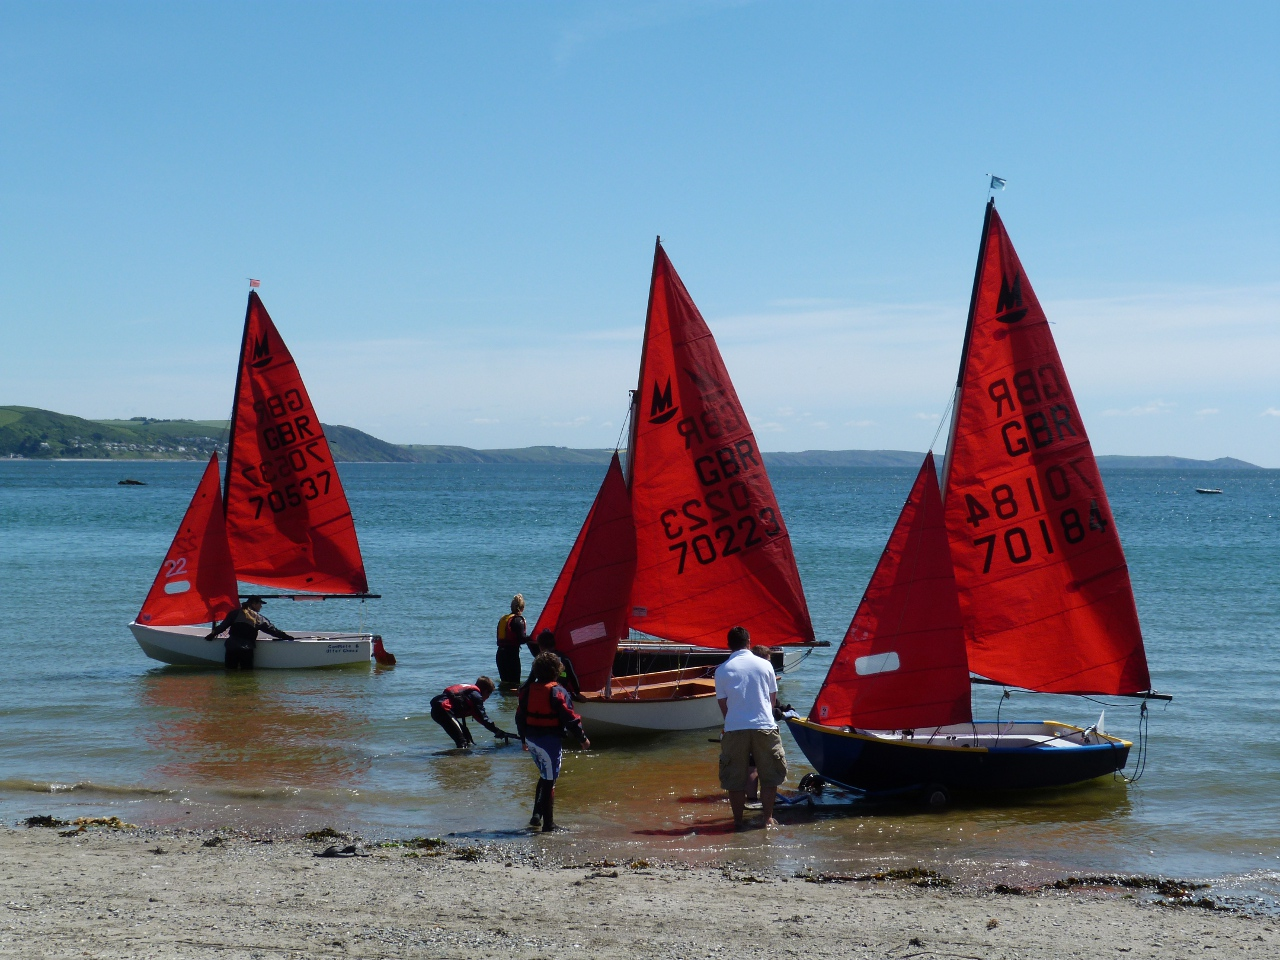 Mirror dinghies launching from a sandy beach onto to a blue sea on a cloudless sunny day